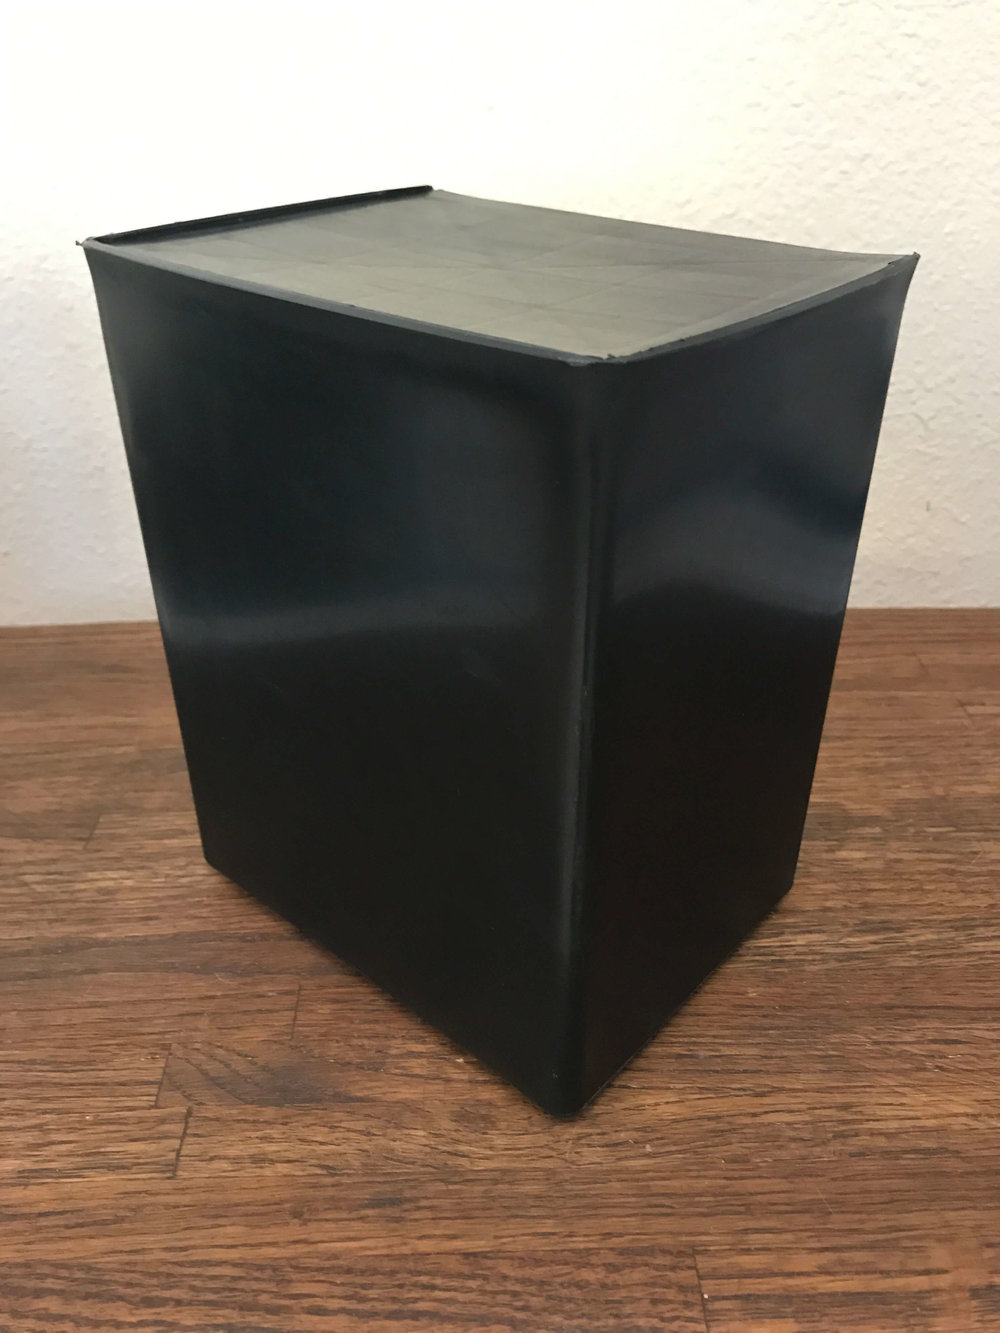 TCC — One black plastic urn included in the direct cremation package